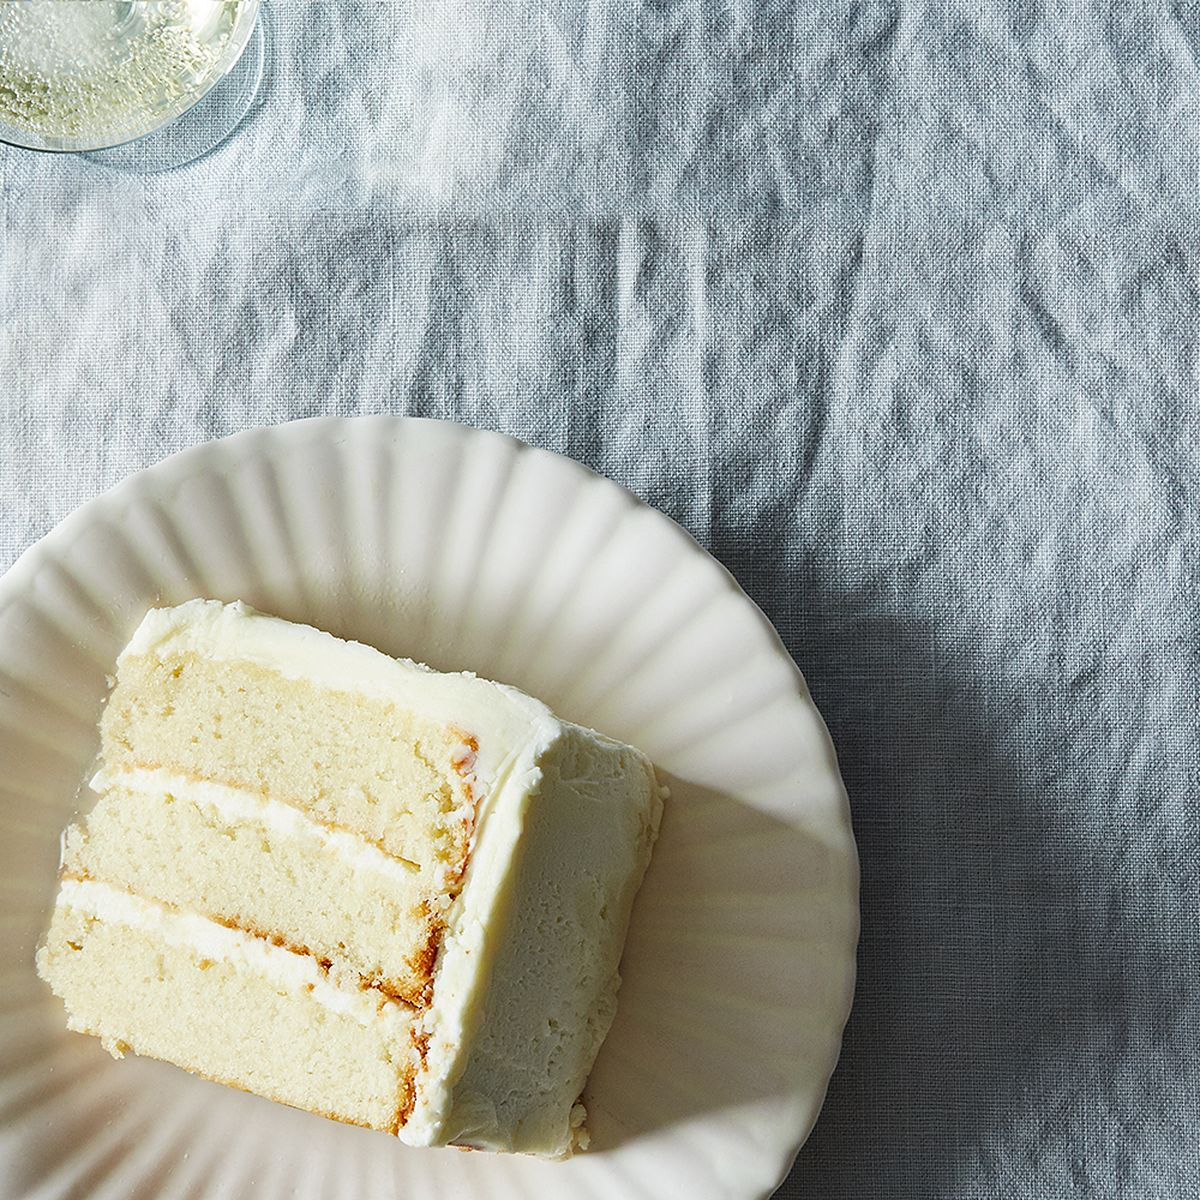 Wedding Cake Flavors.The Most Popular Wedding Cake Flavors By Decade